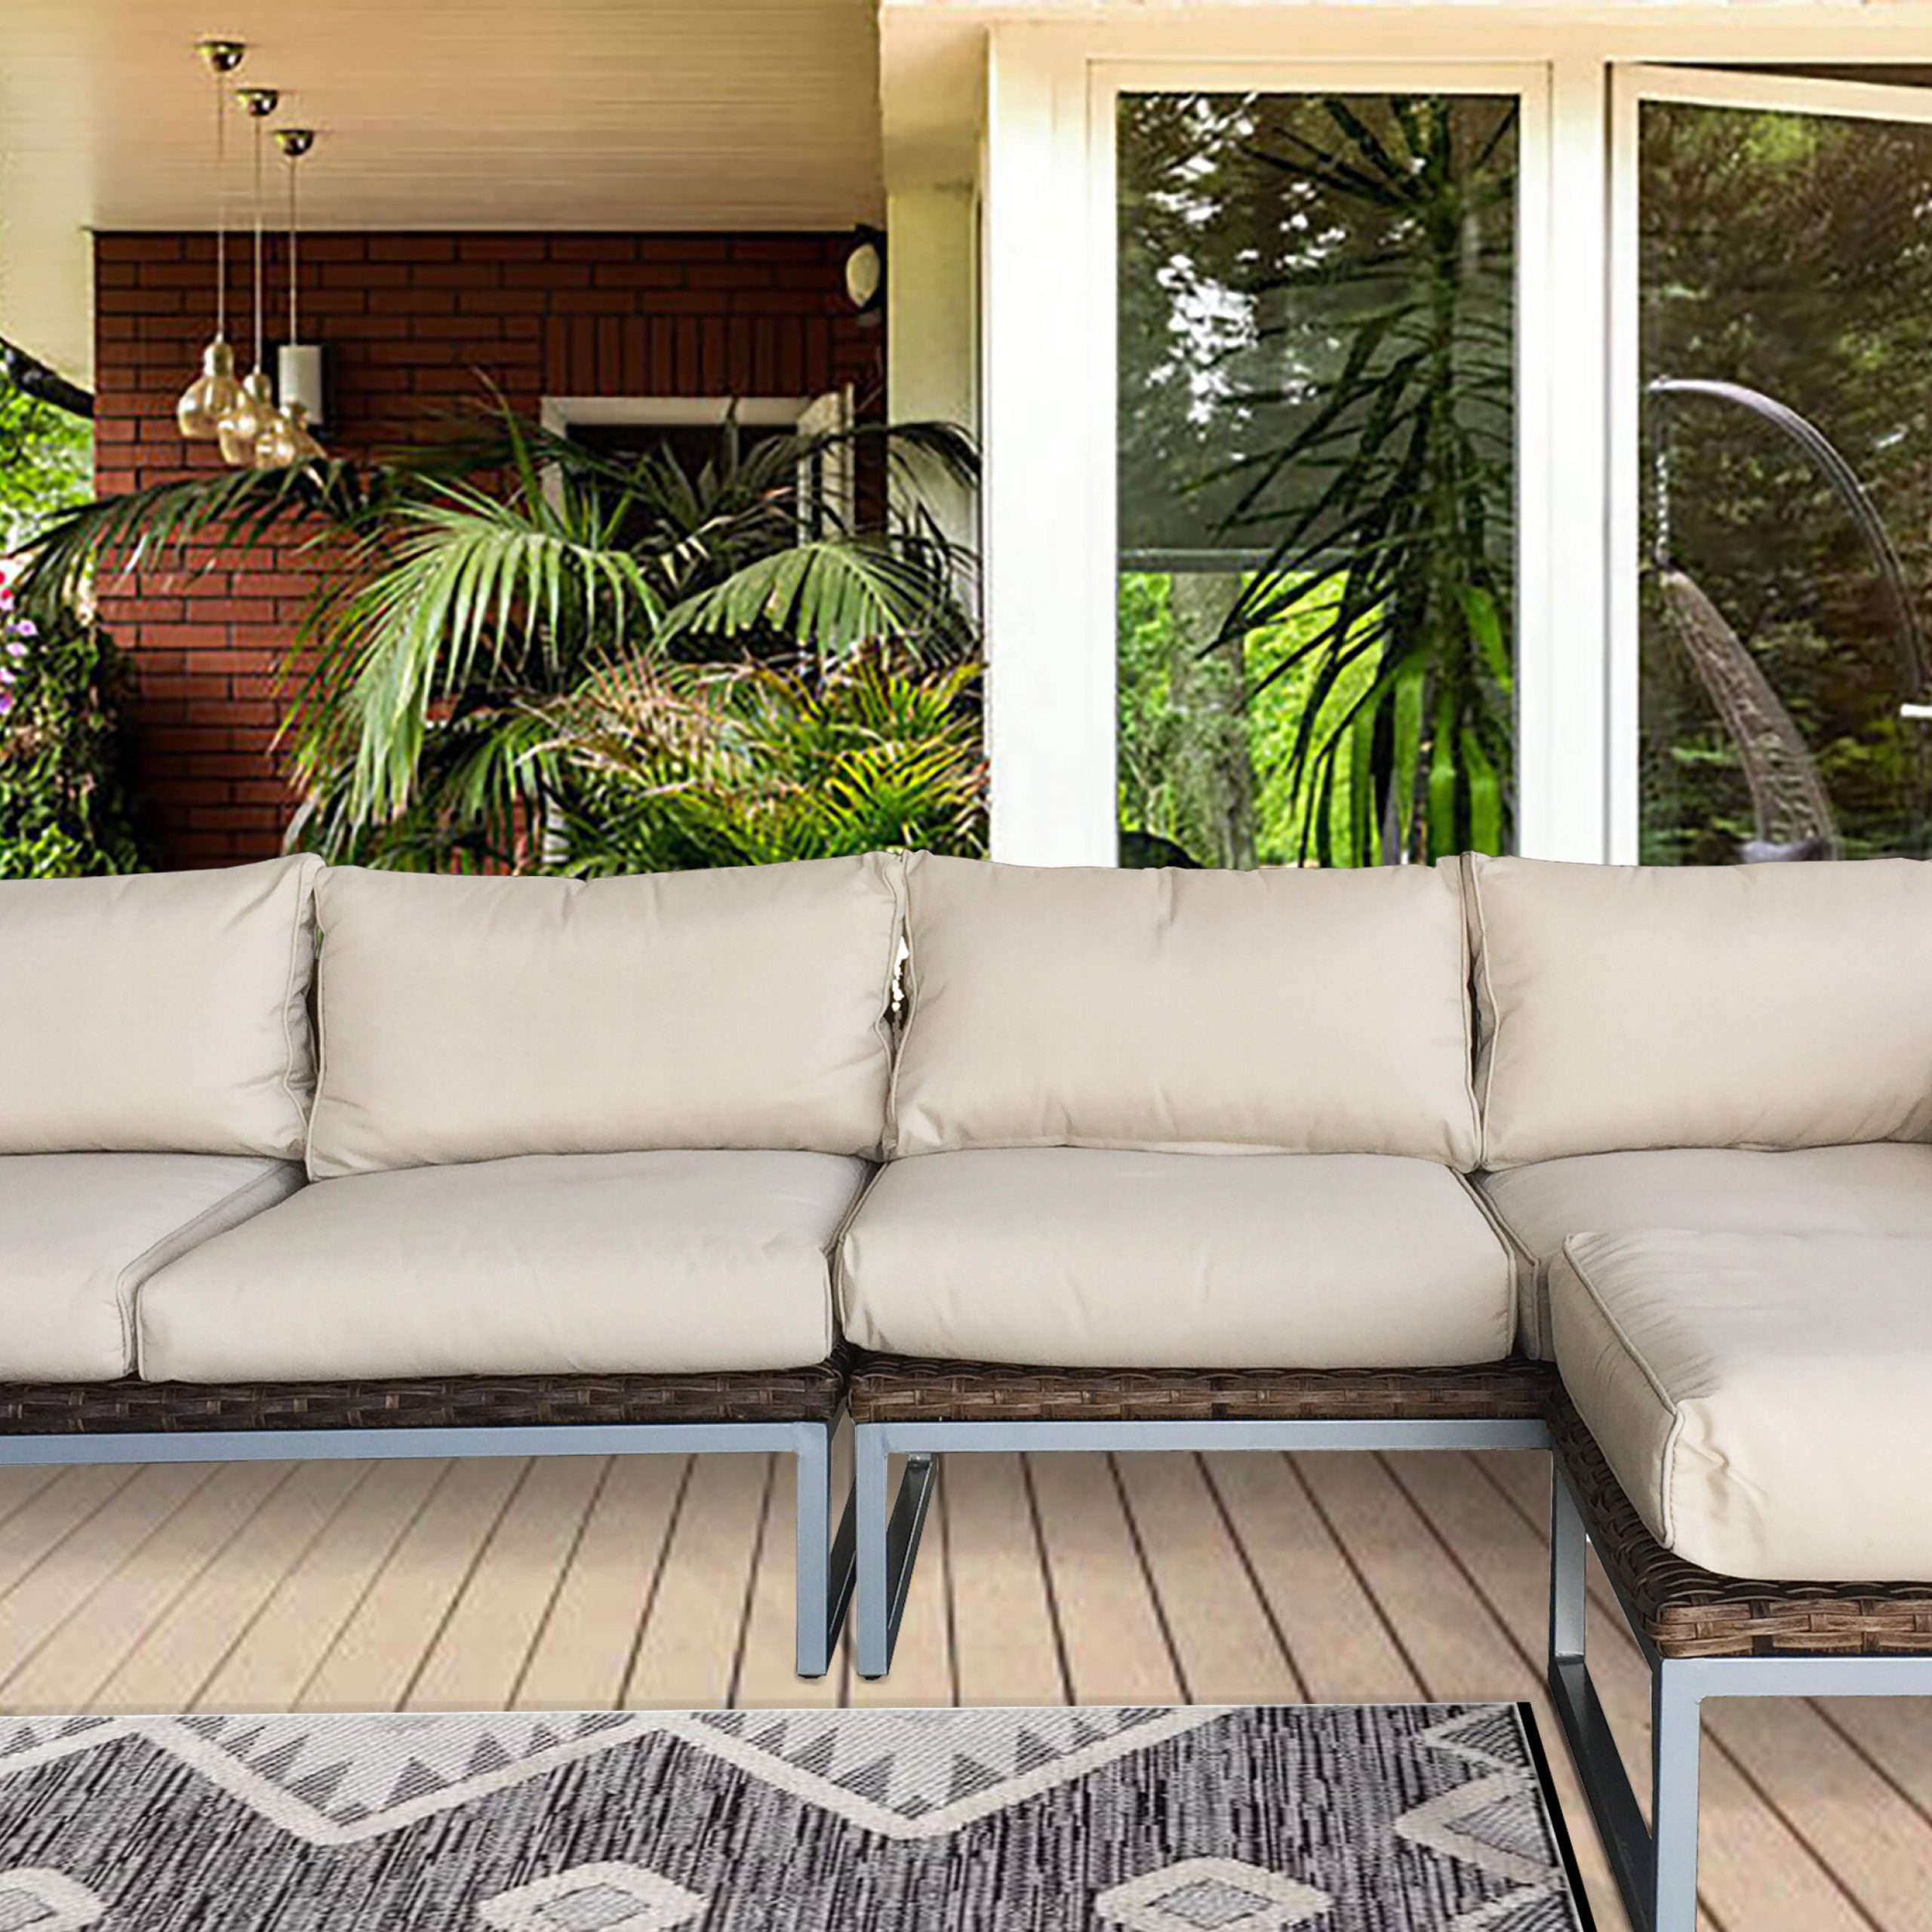 Most Recently Released Honeycutt Patio Sofa With Cushions Inside Honeycutt Patio Sofas With Cushions (View 3 of 25)